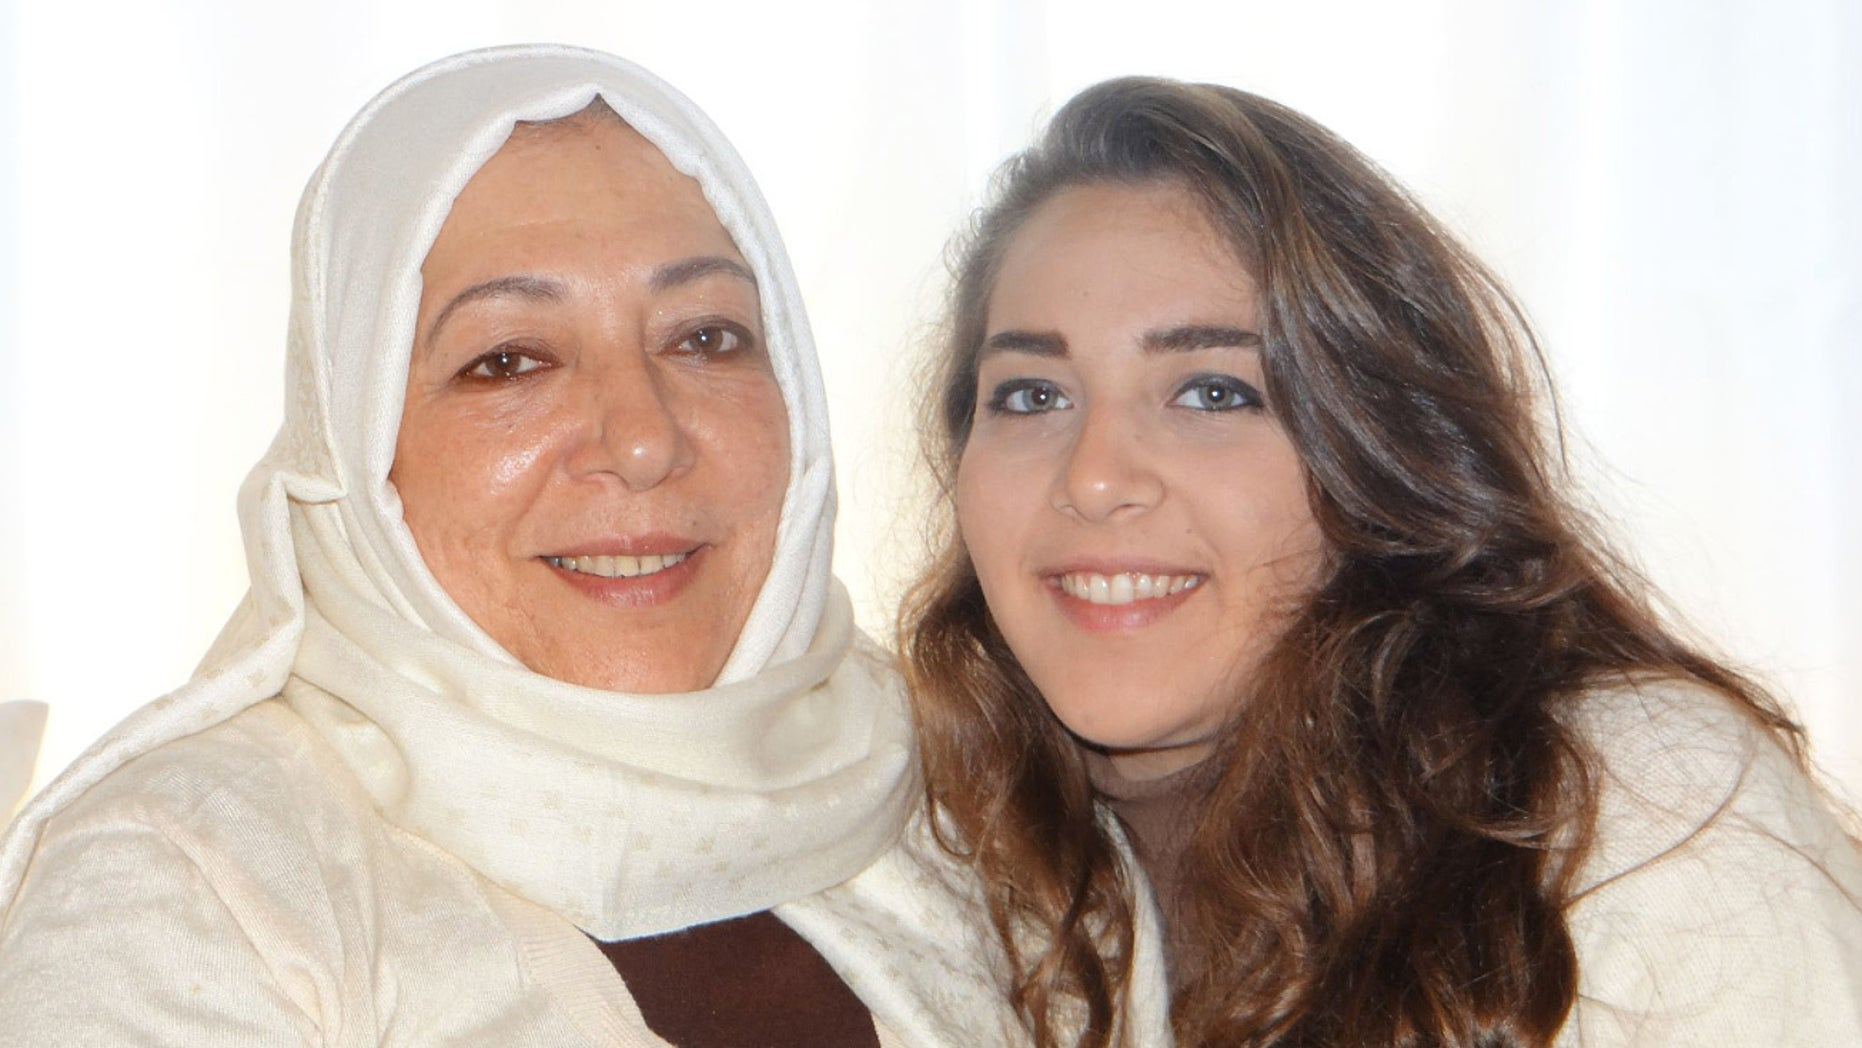 The bodies of 60-year-old Orouba Barakat (l) and her daughter, 23-year-old journalist Halla Barakat (r), were discovered late Thursday after friends contacted police when the reporter didn't show up for work.